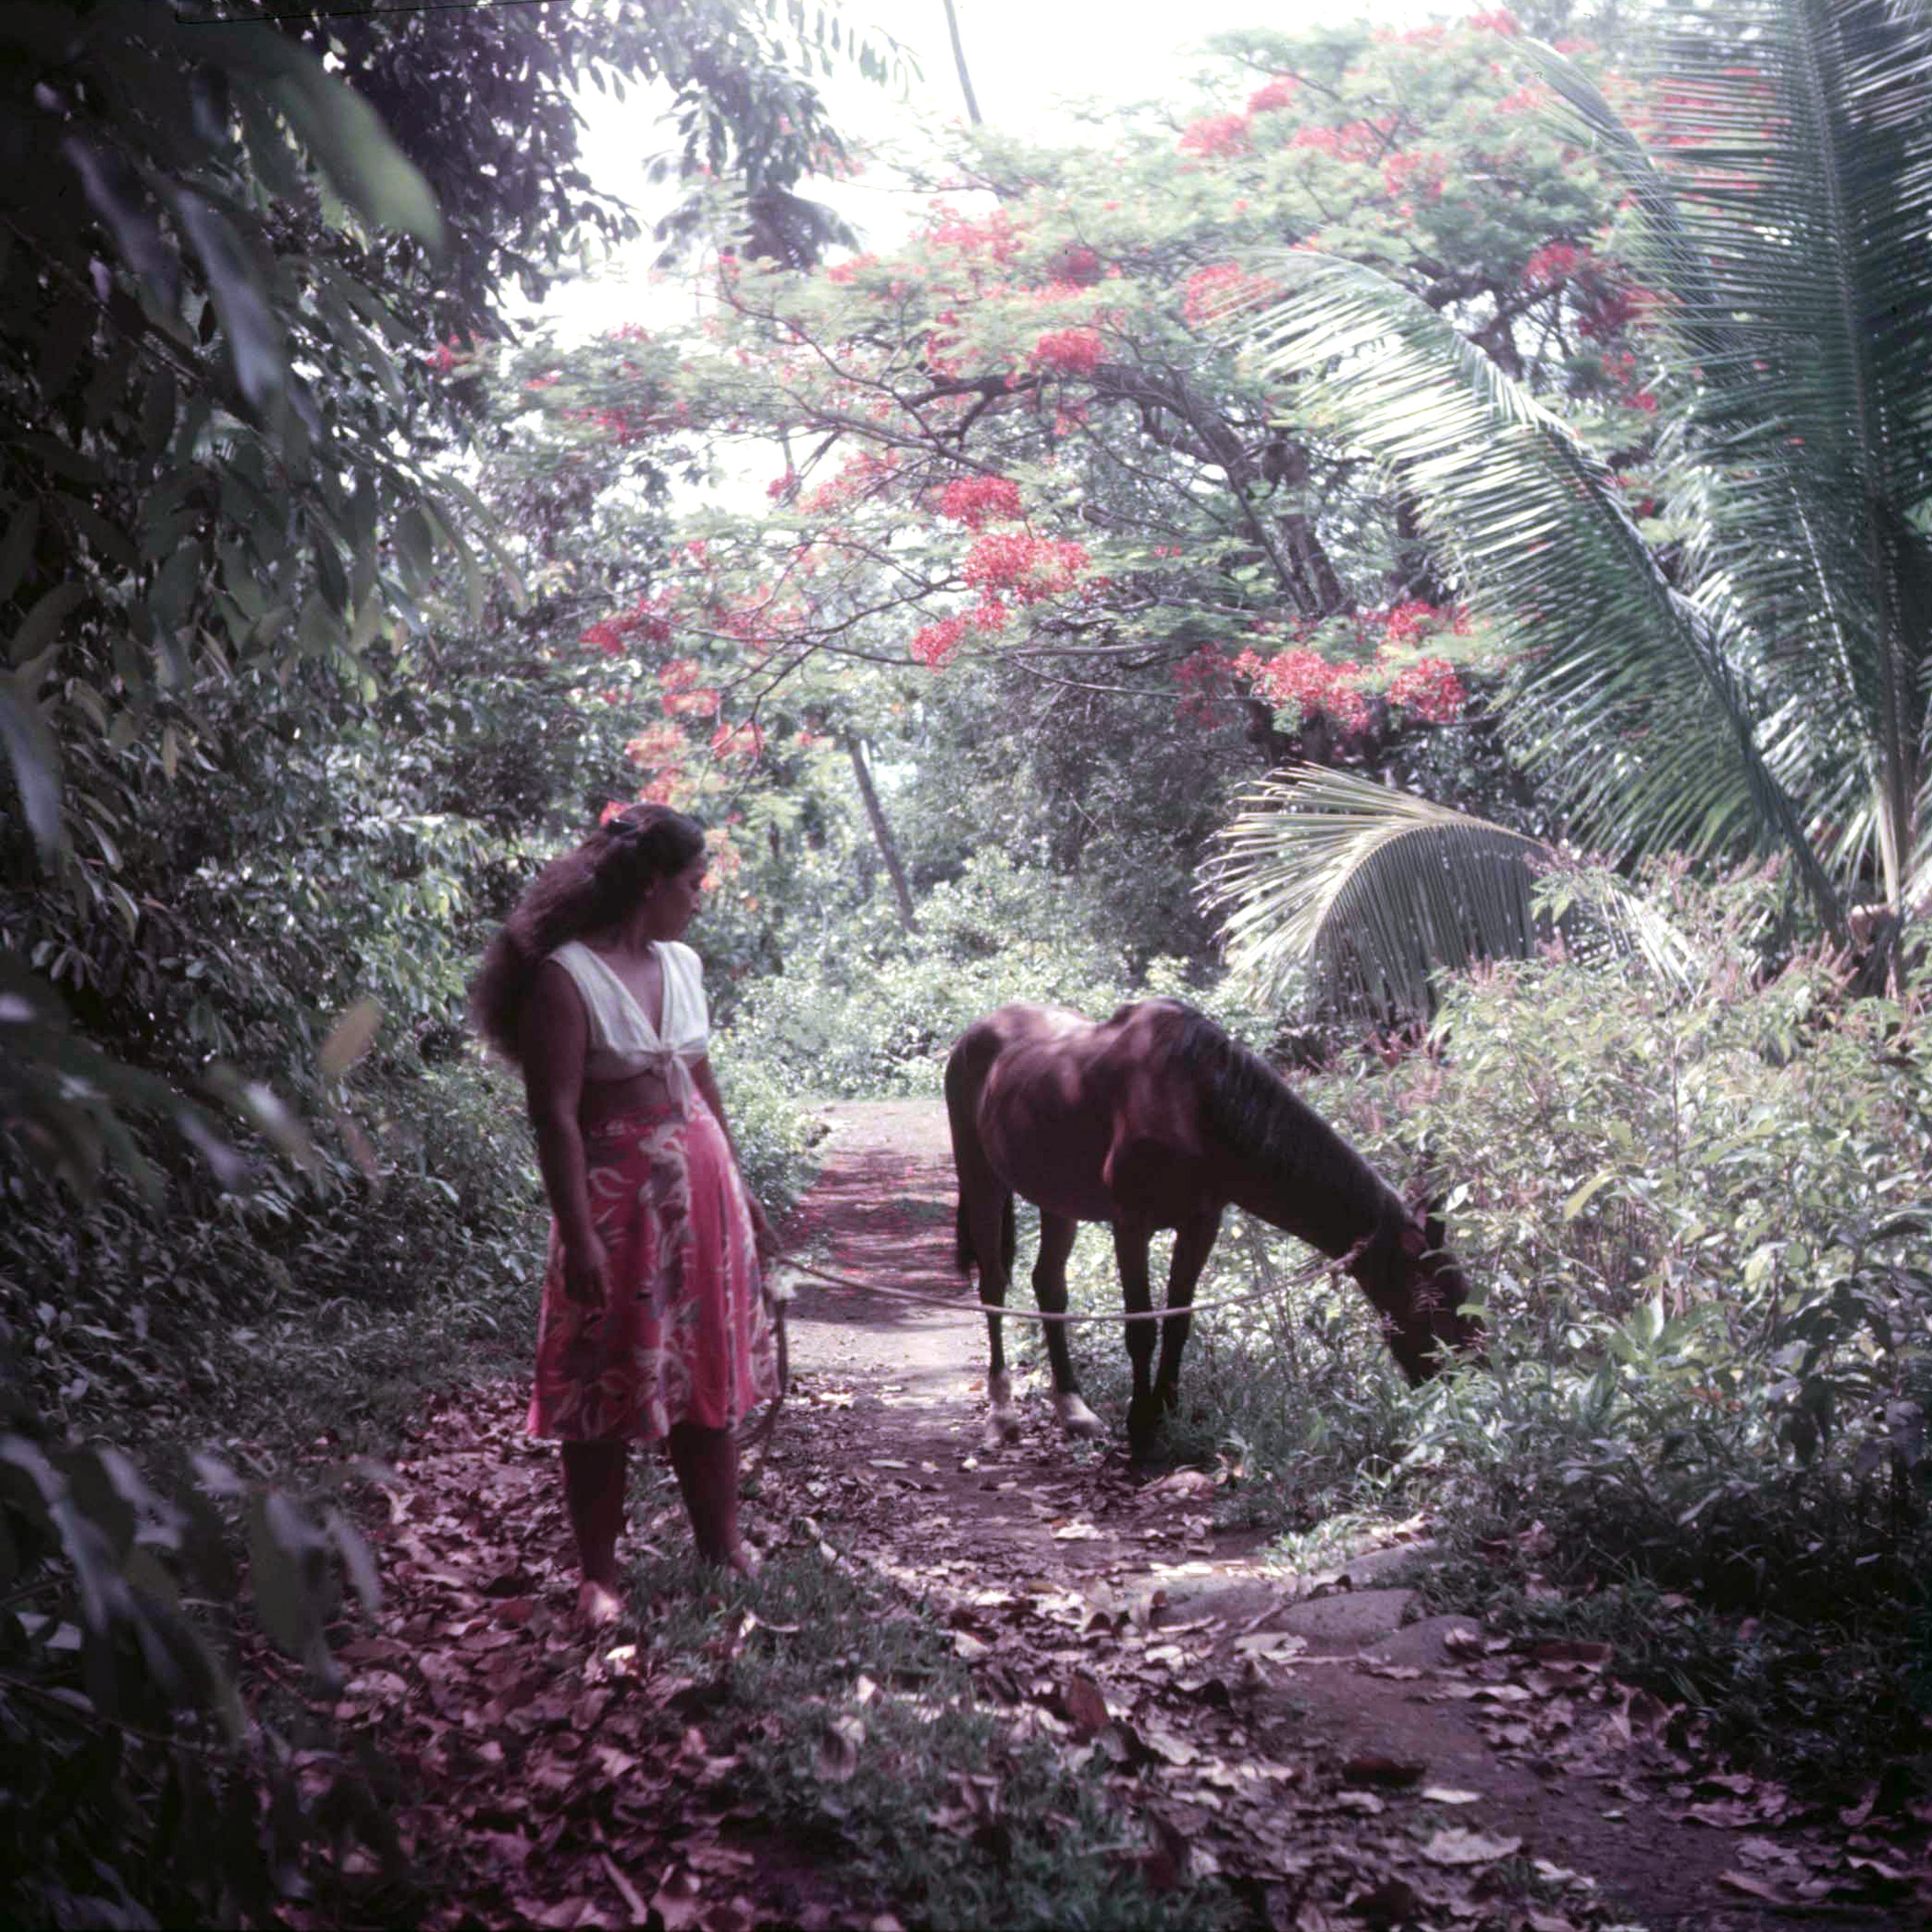 A Tahitian woman walking her horse through the jungle.